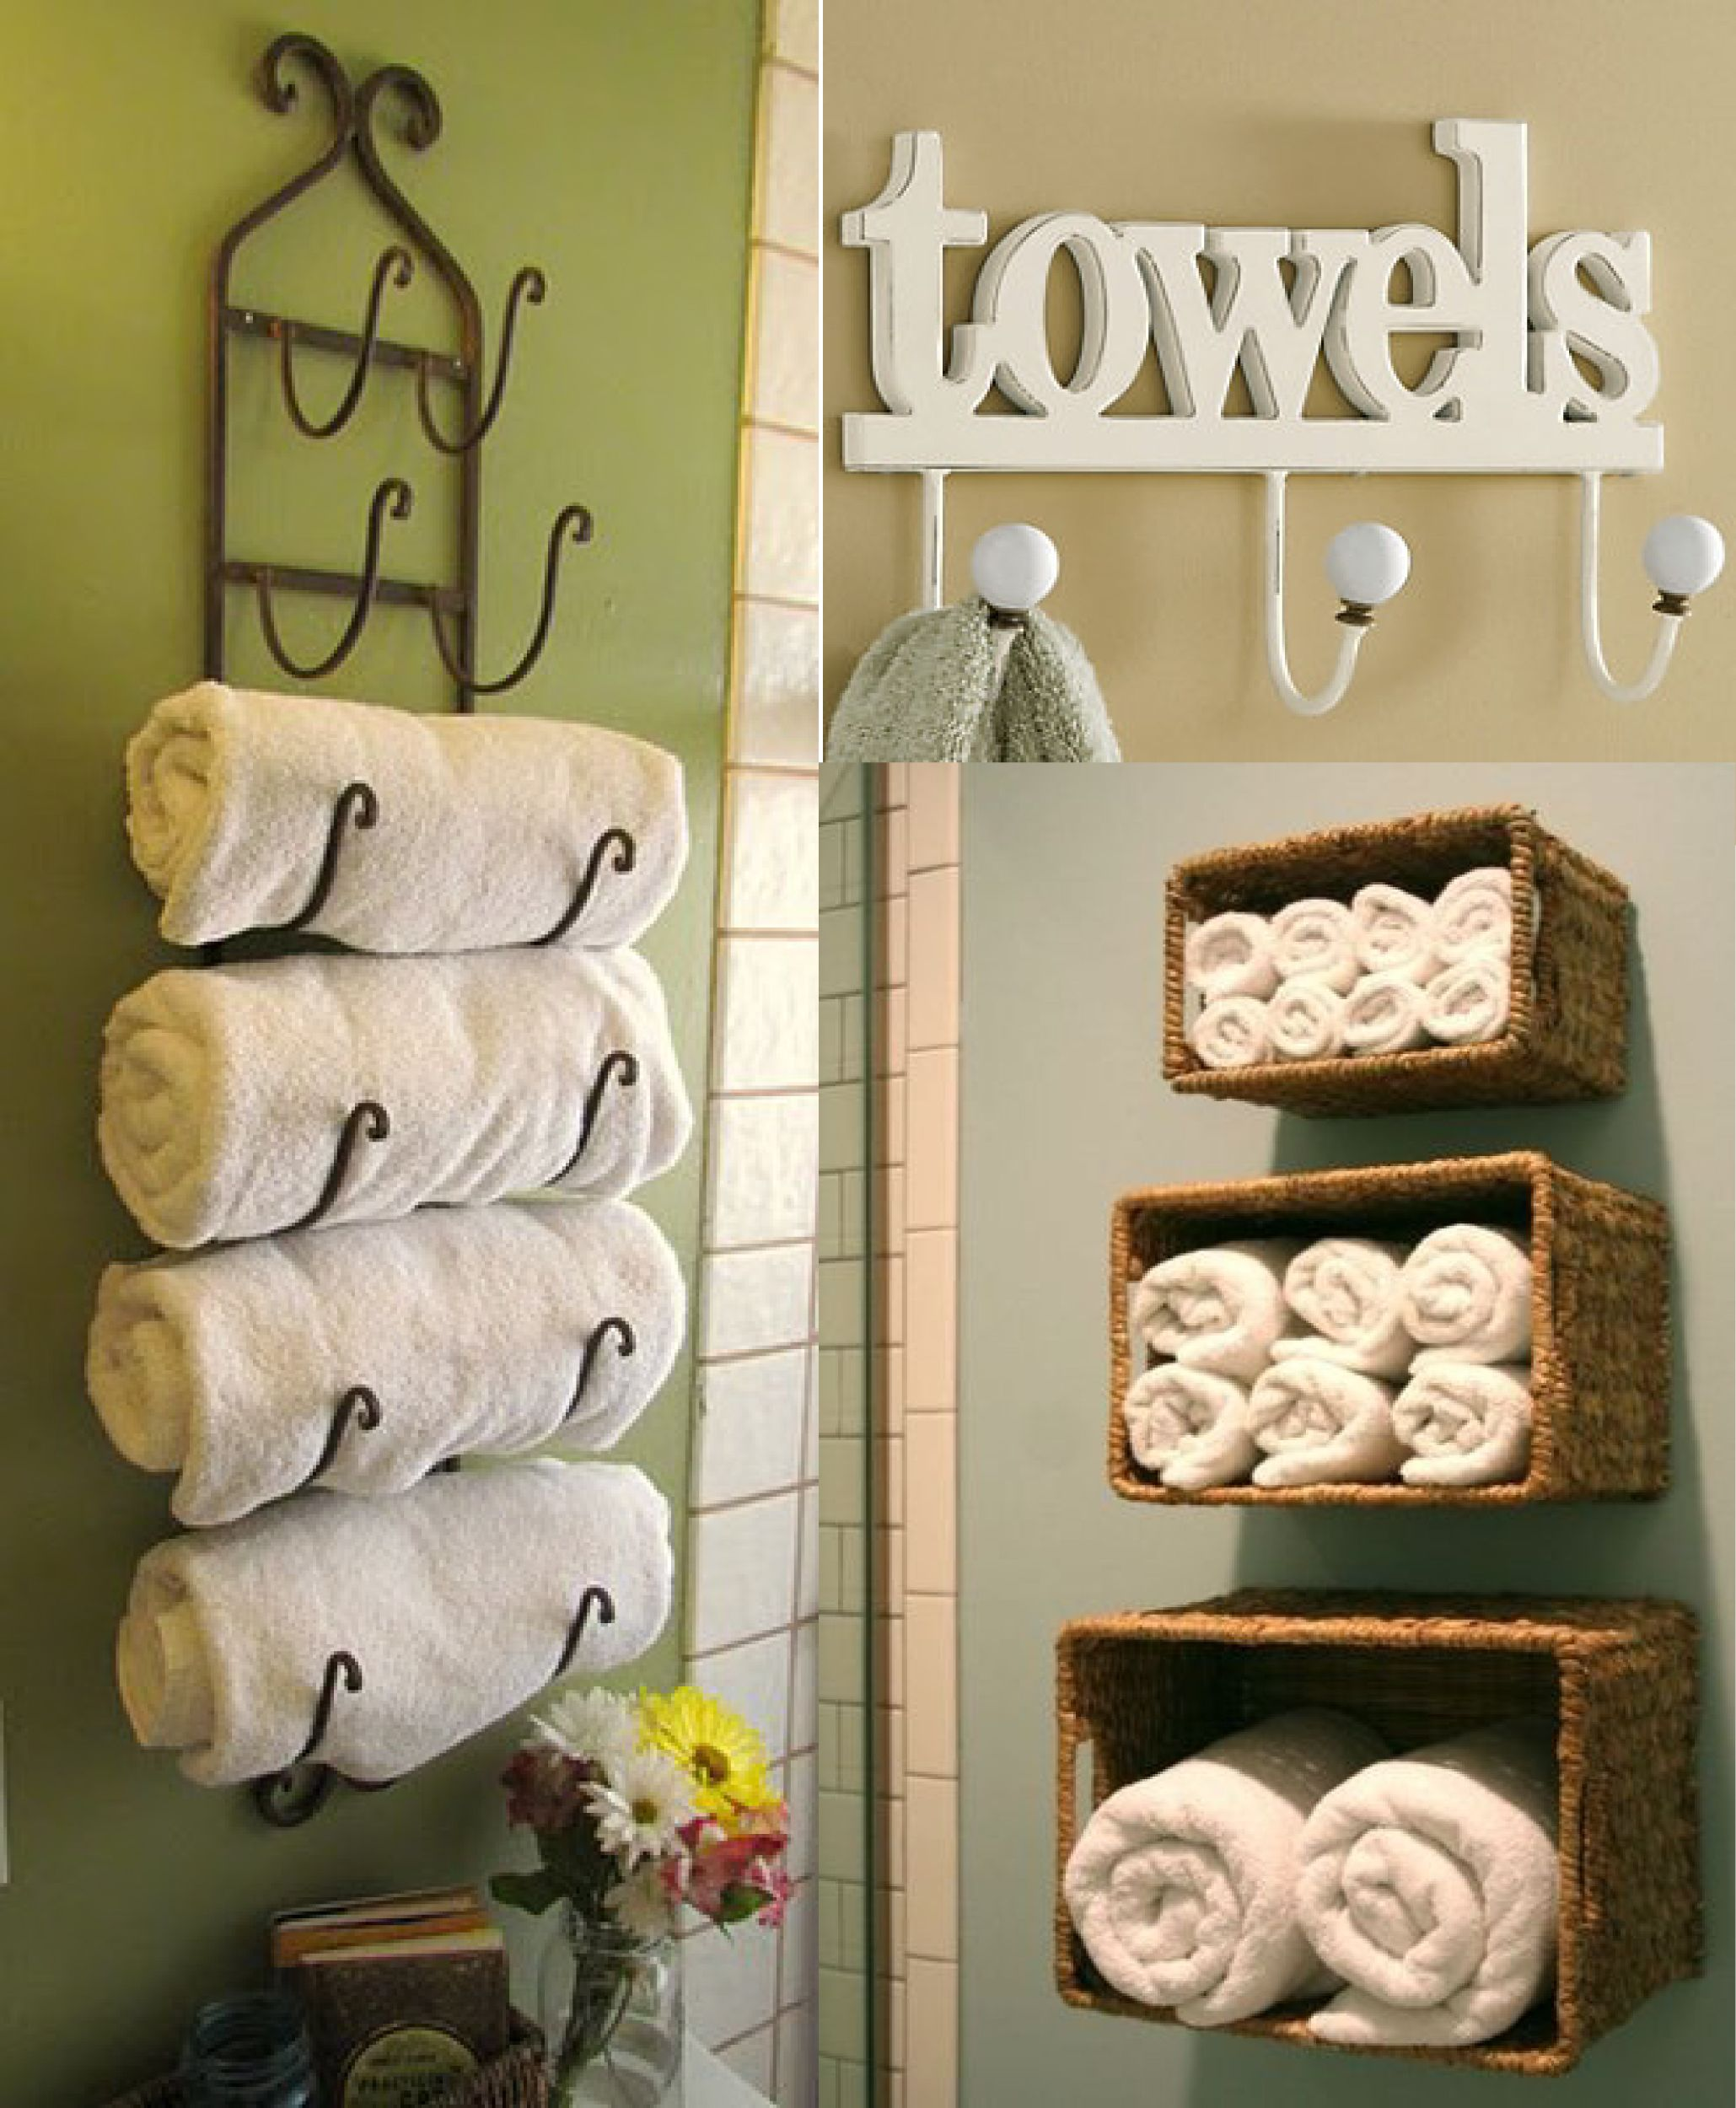 Pin by michele redmond on master bath ideas pinterest Towel storage ideas ikea